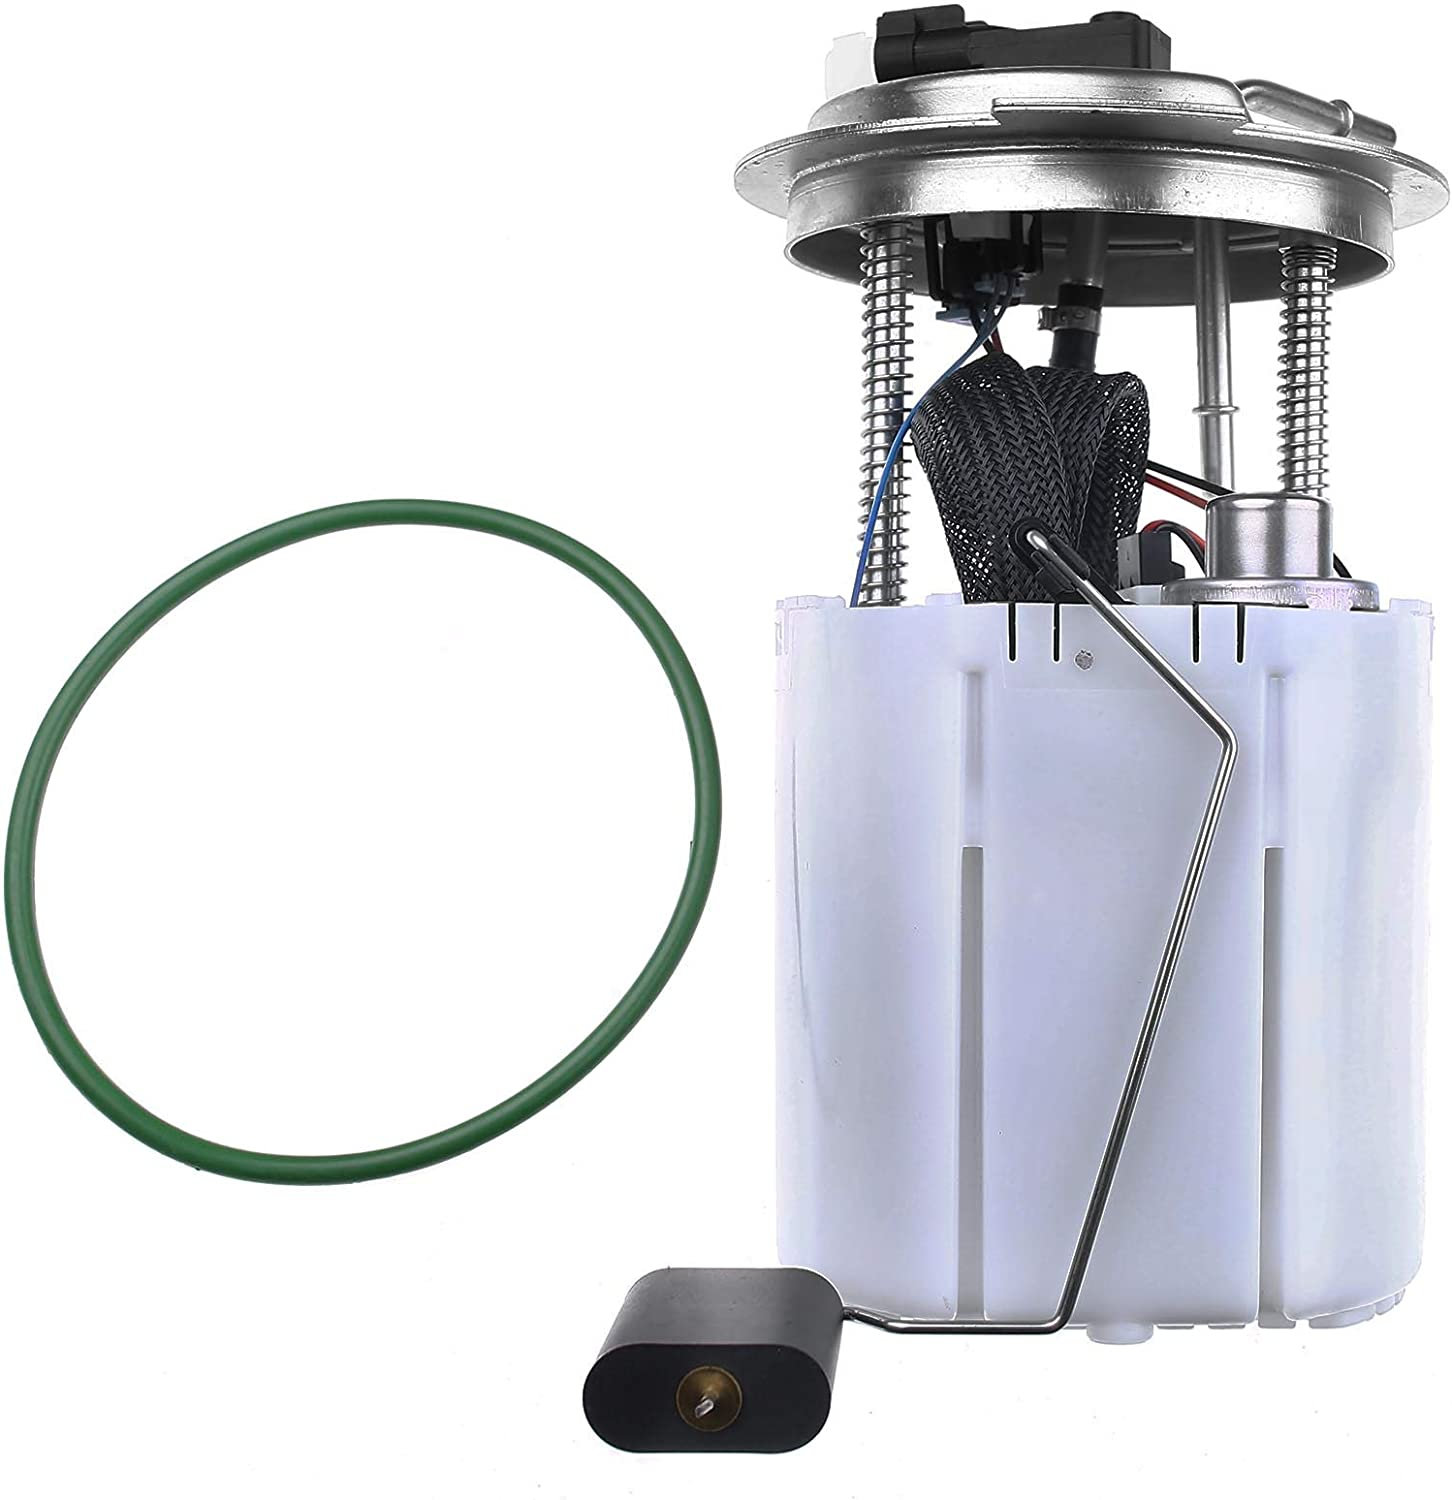 Challenge the lowest price of Japan online shop ☆ A-Premium Electric Fuel Pump Module with Assembly Sealing Ring